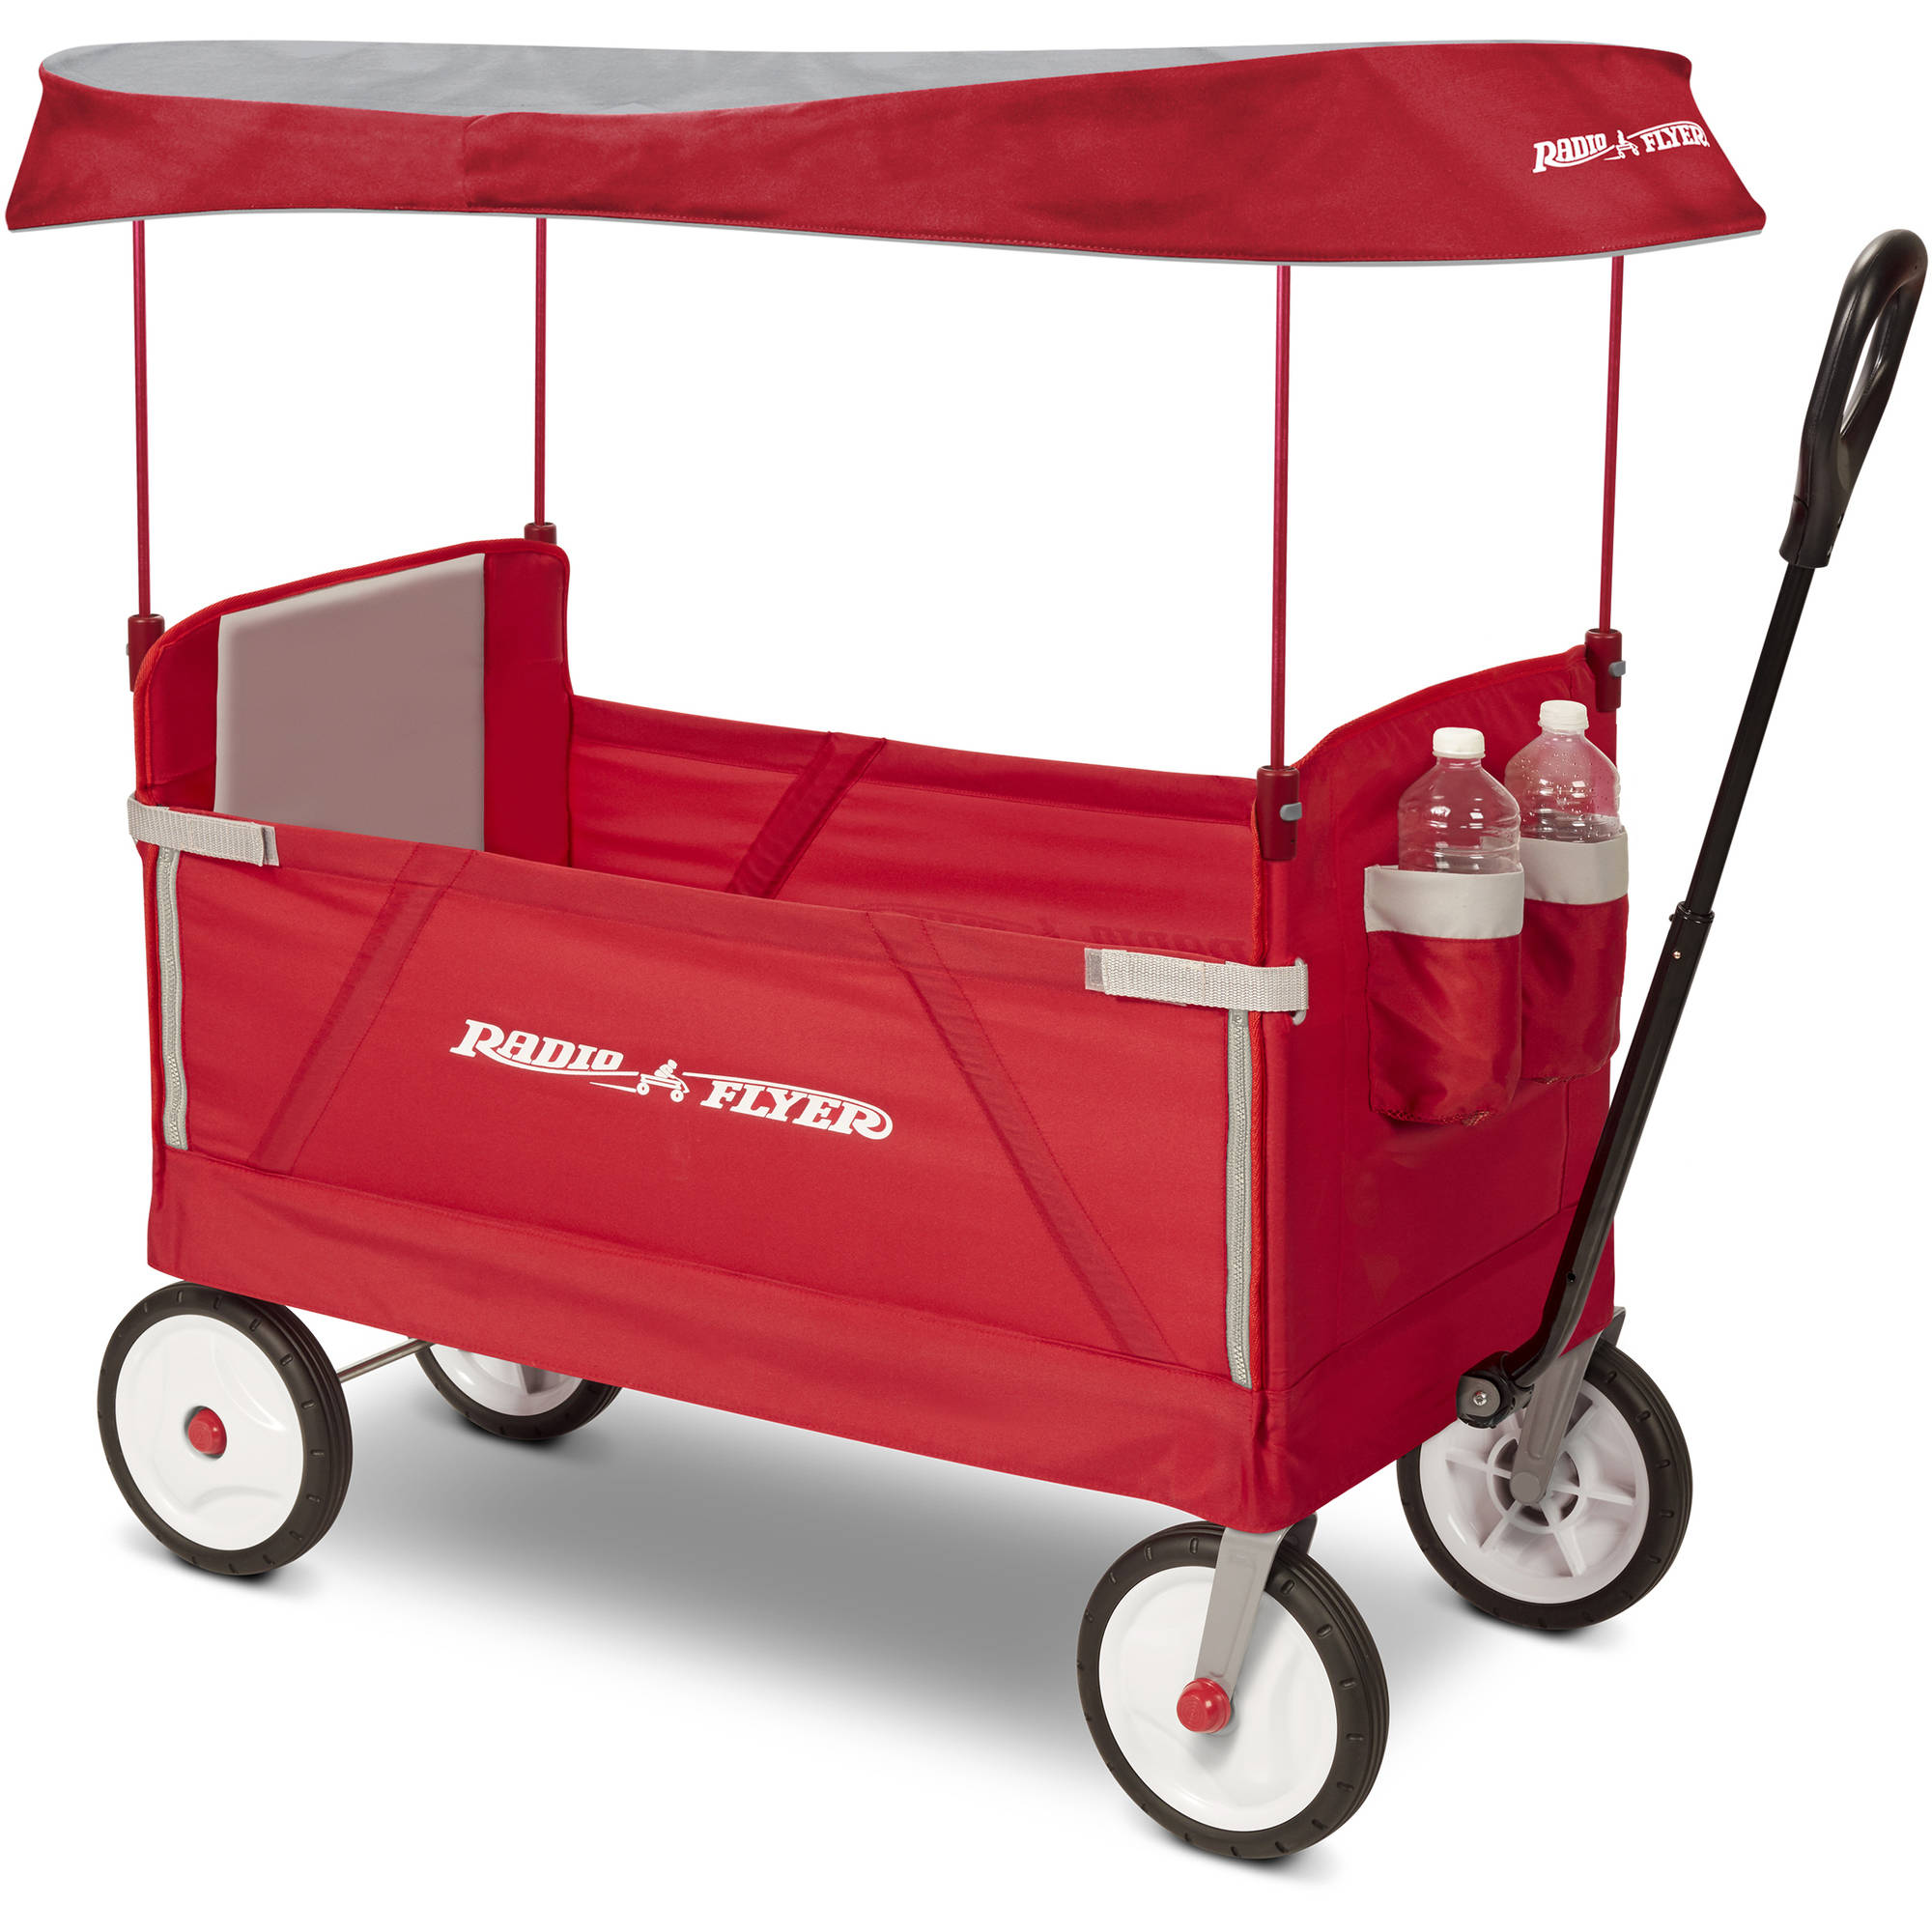 Best Kids Wagons - Radio Flyer 3-In-1 EZ Fold Wagon with Canopy Review